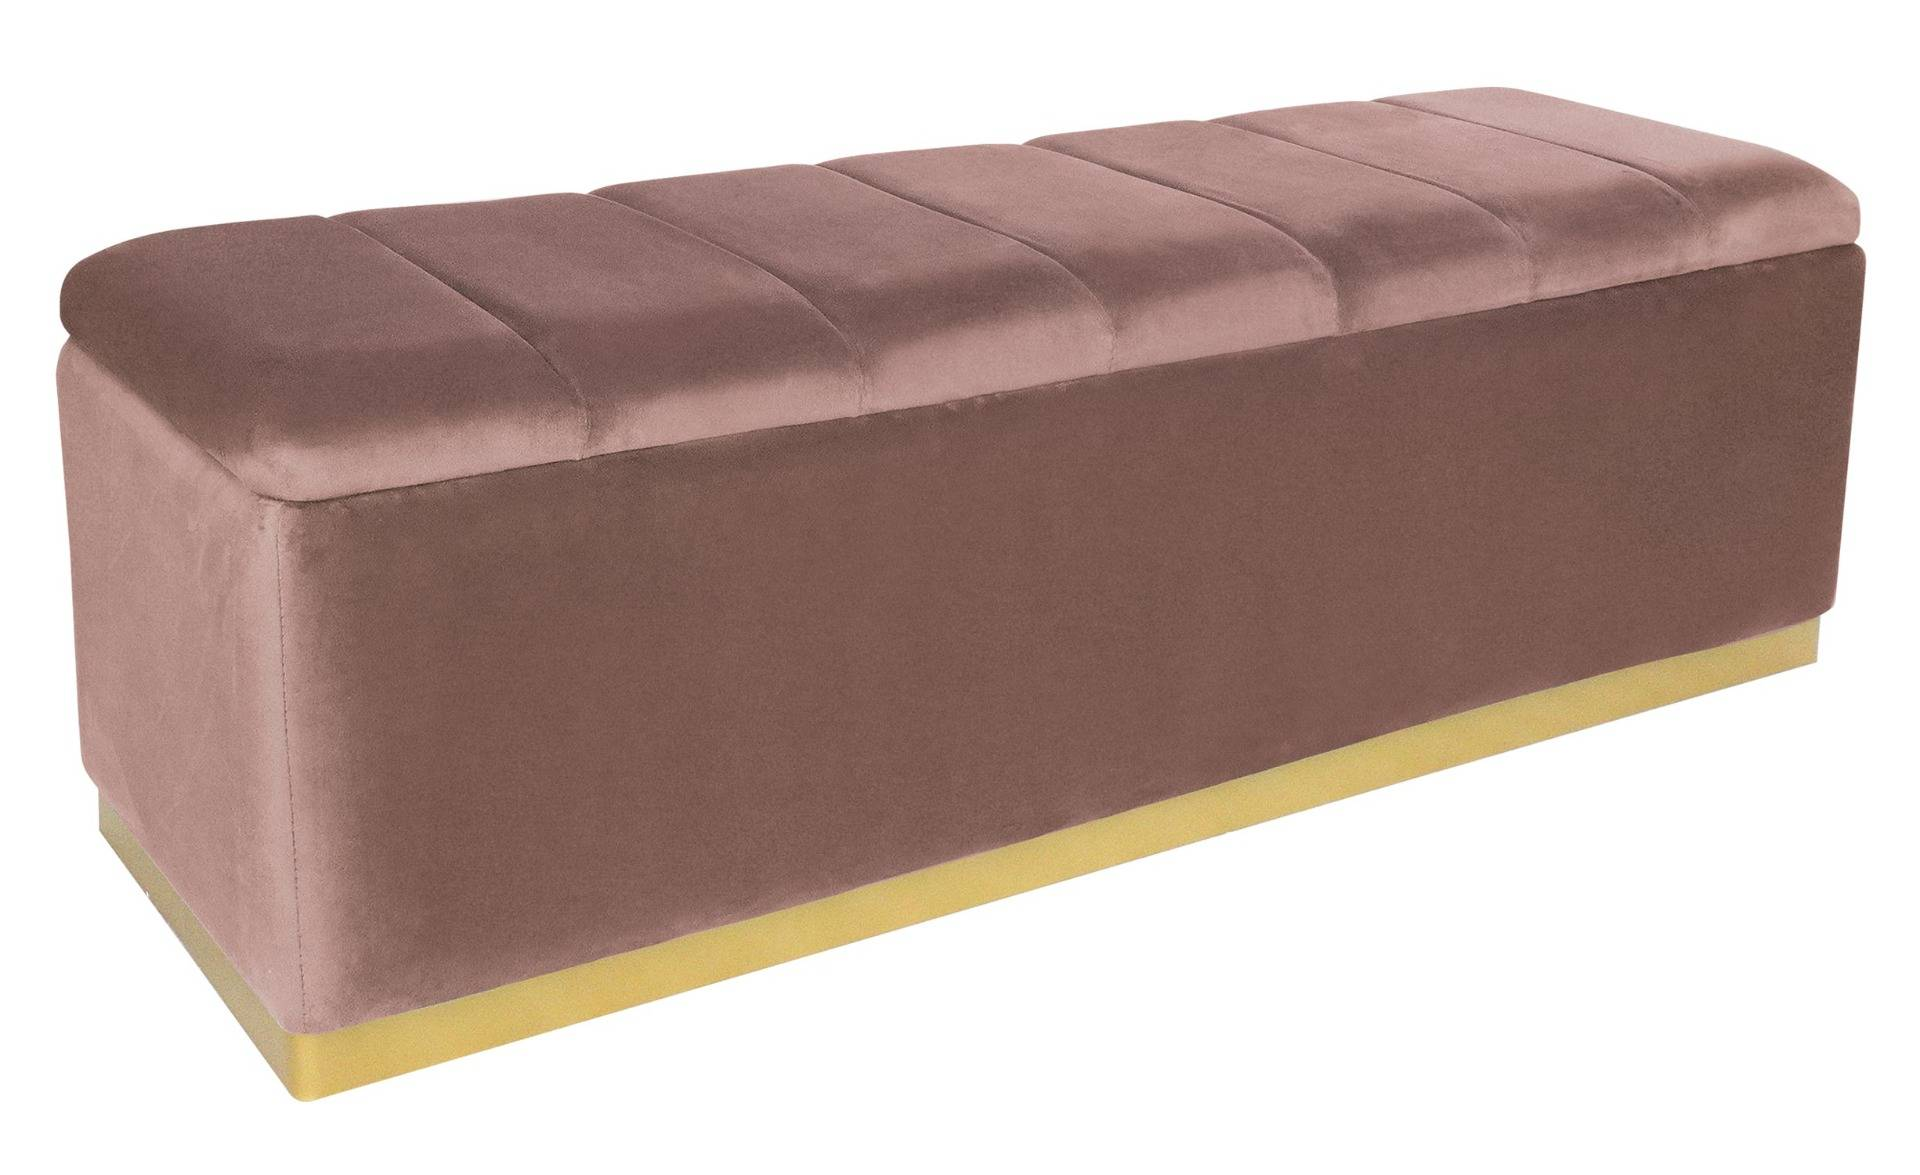 MENZZO Banc coffre Alexandrie Velours Rose Pied Or